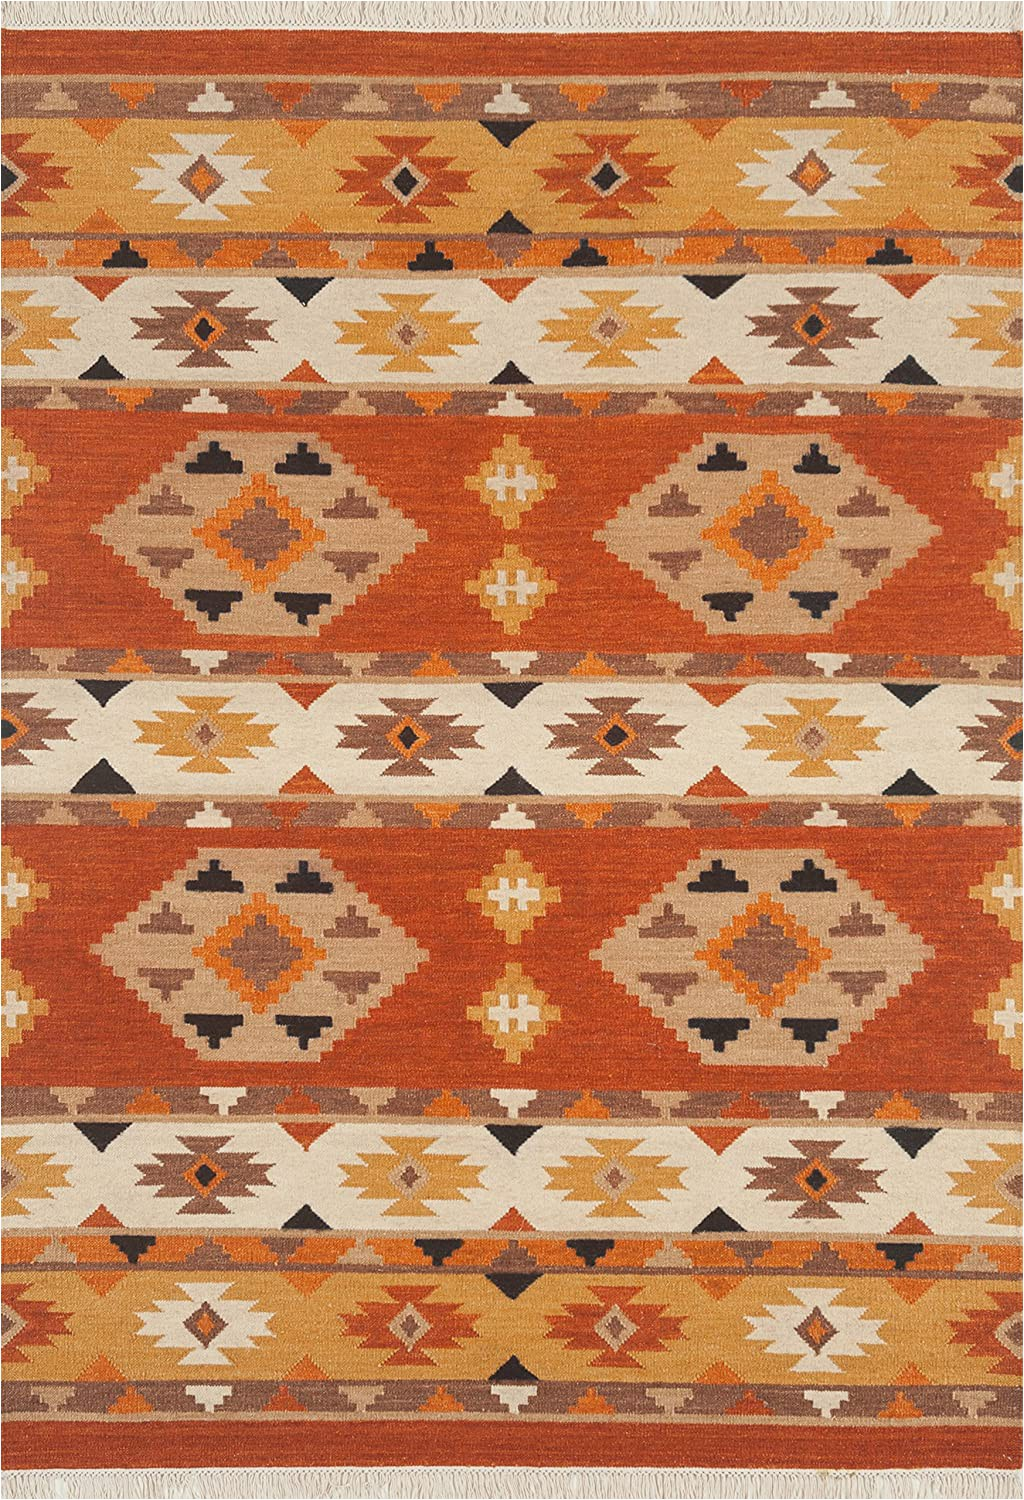 Lodge area Rugs 8 X 10 Continental Rug Pany Le1220 Lodge area Rug 8 X 10